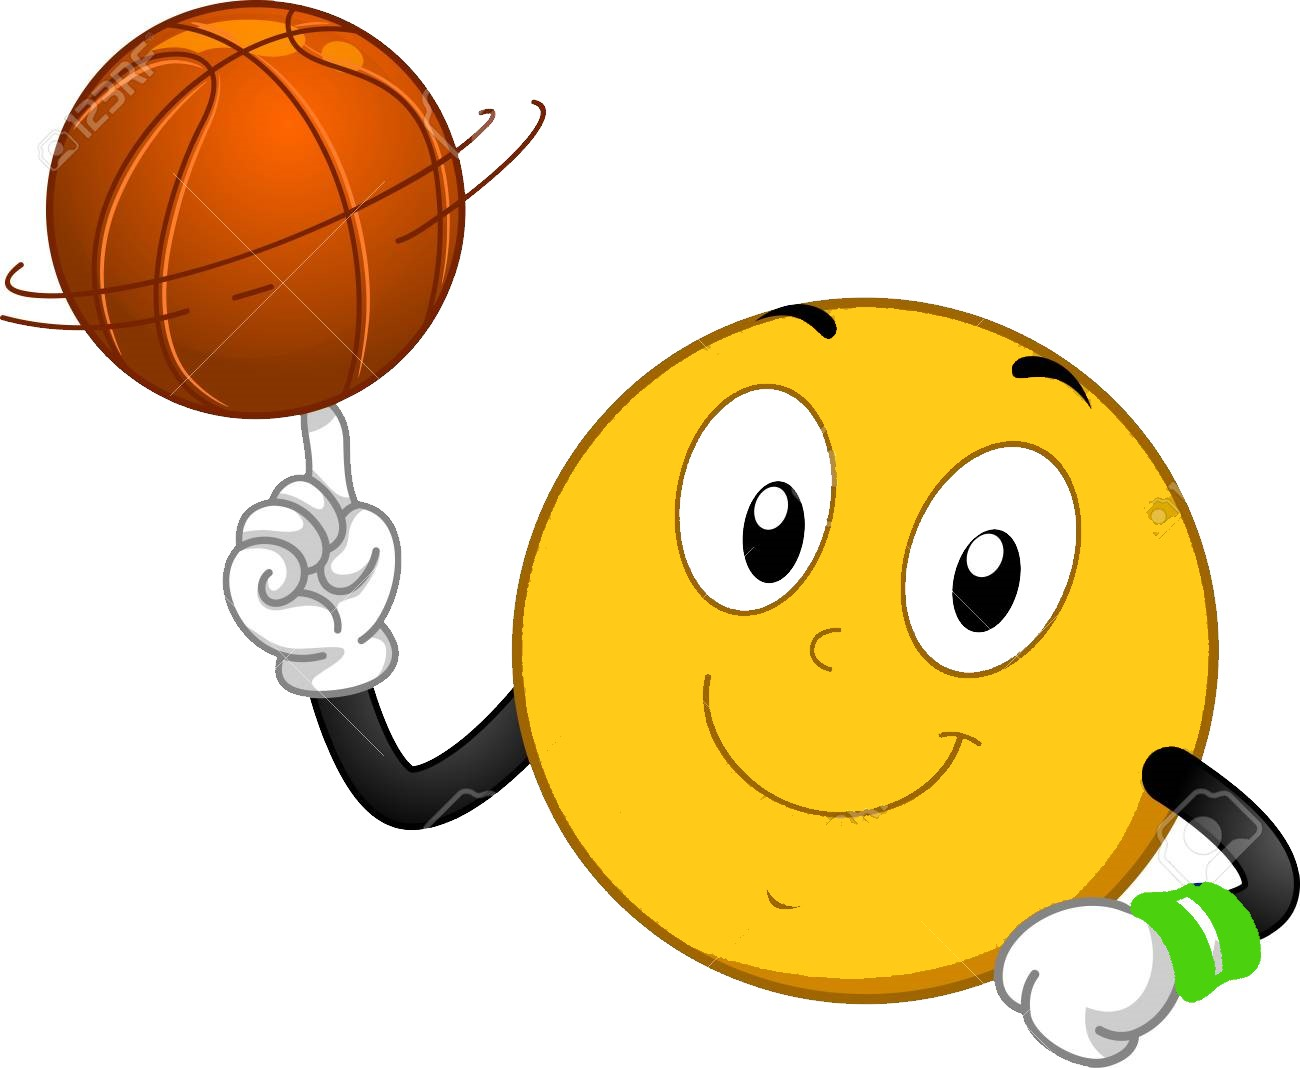 93288877-illustration-of-a-smiley-mascot-spinning-a-basketball-ball-on-its-finger